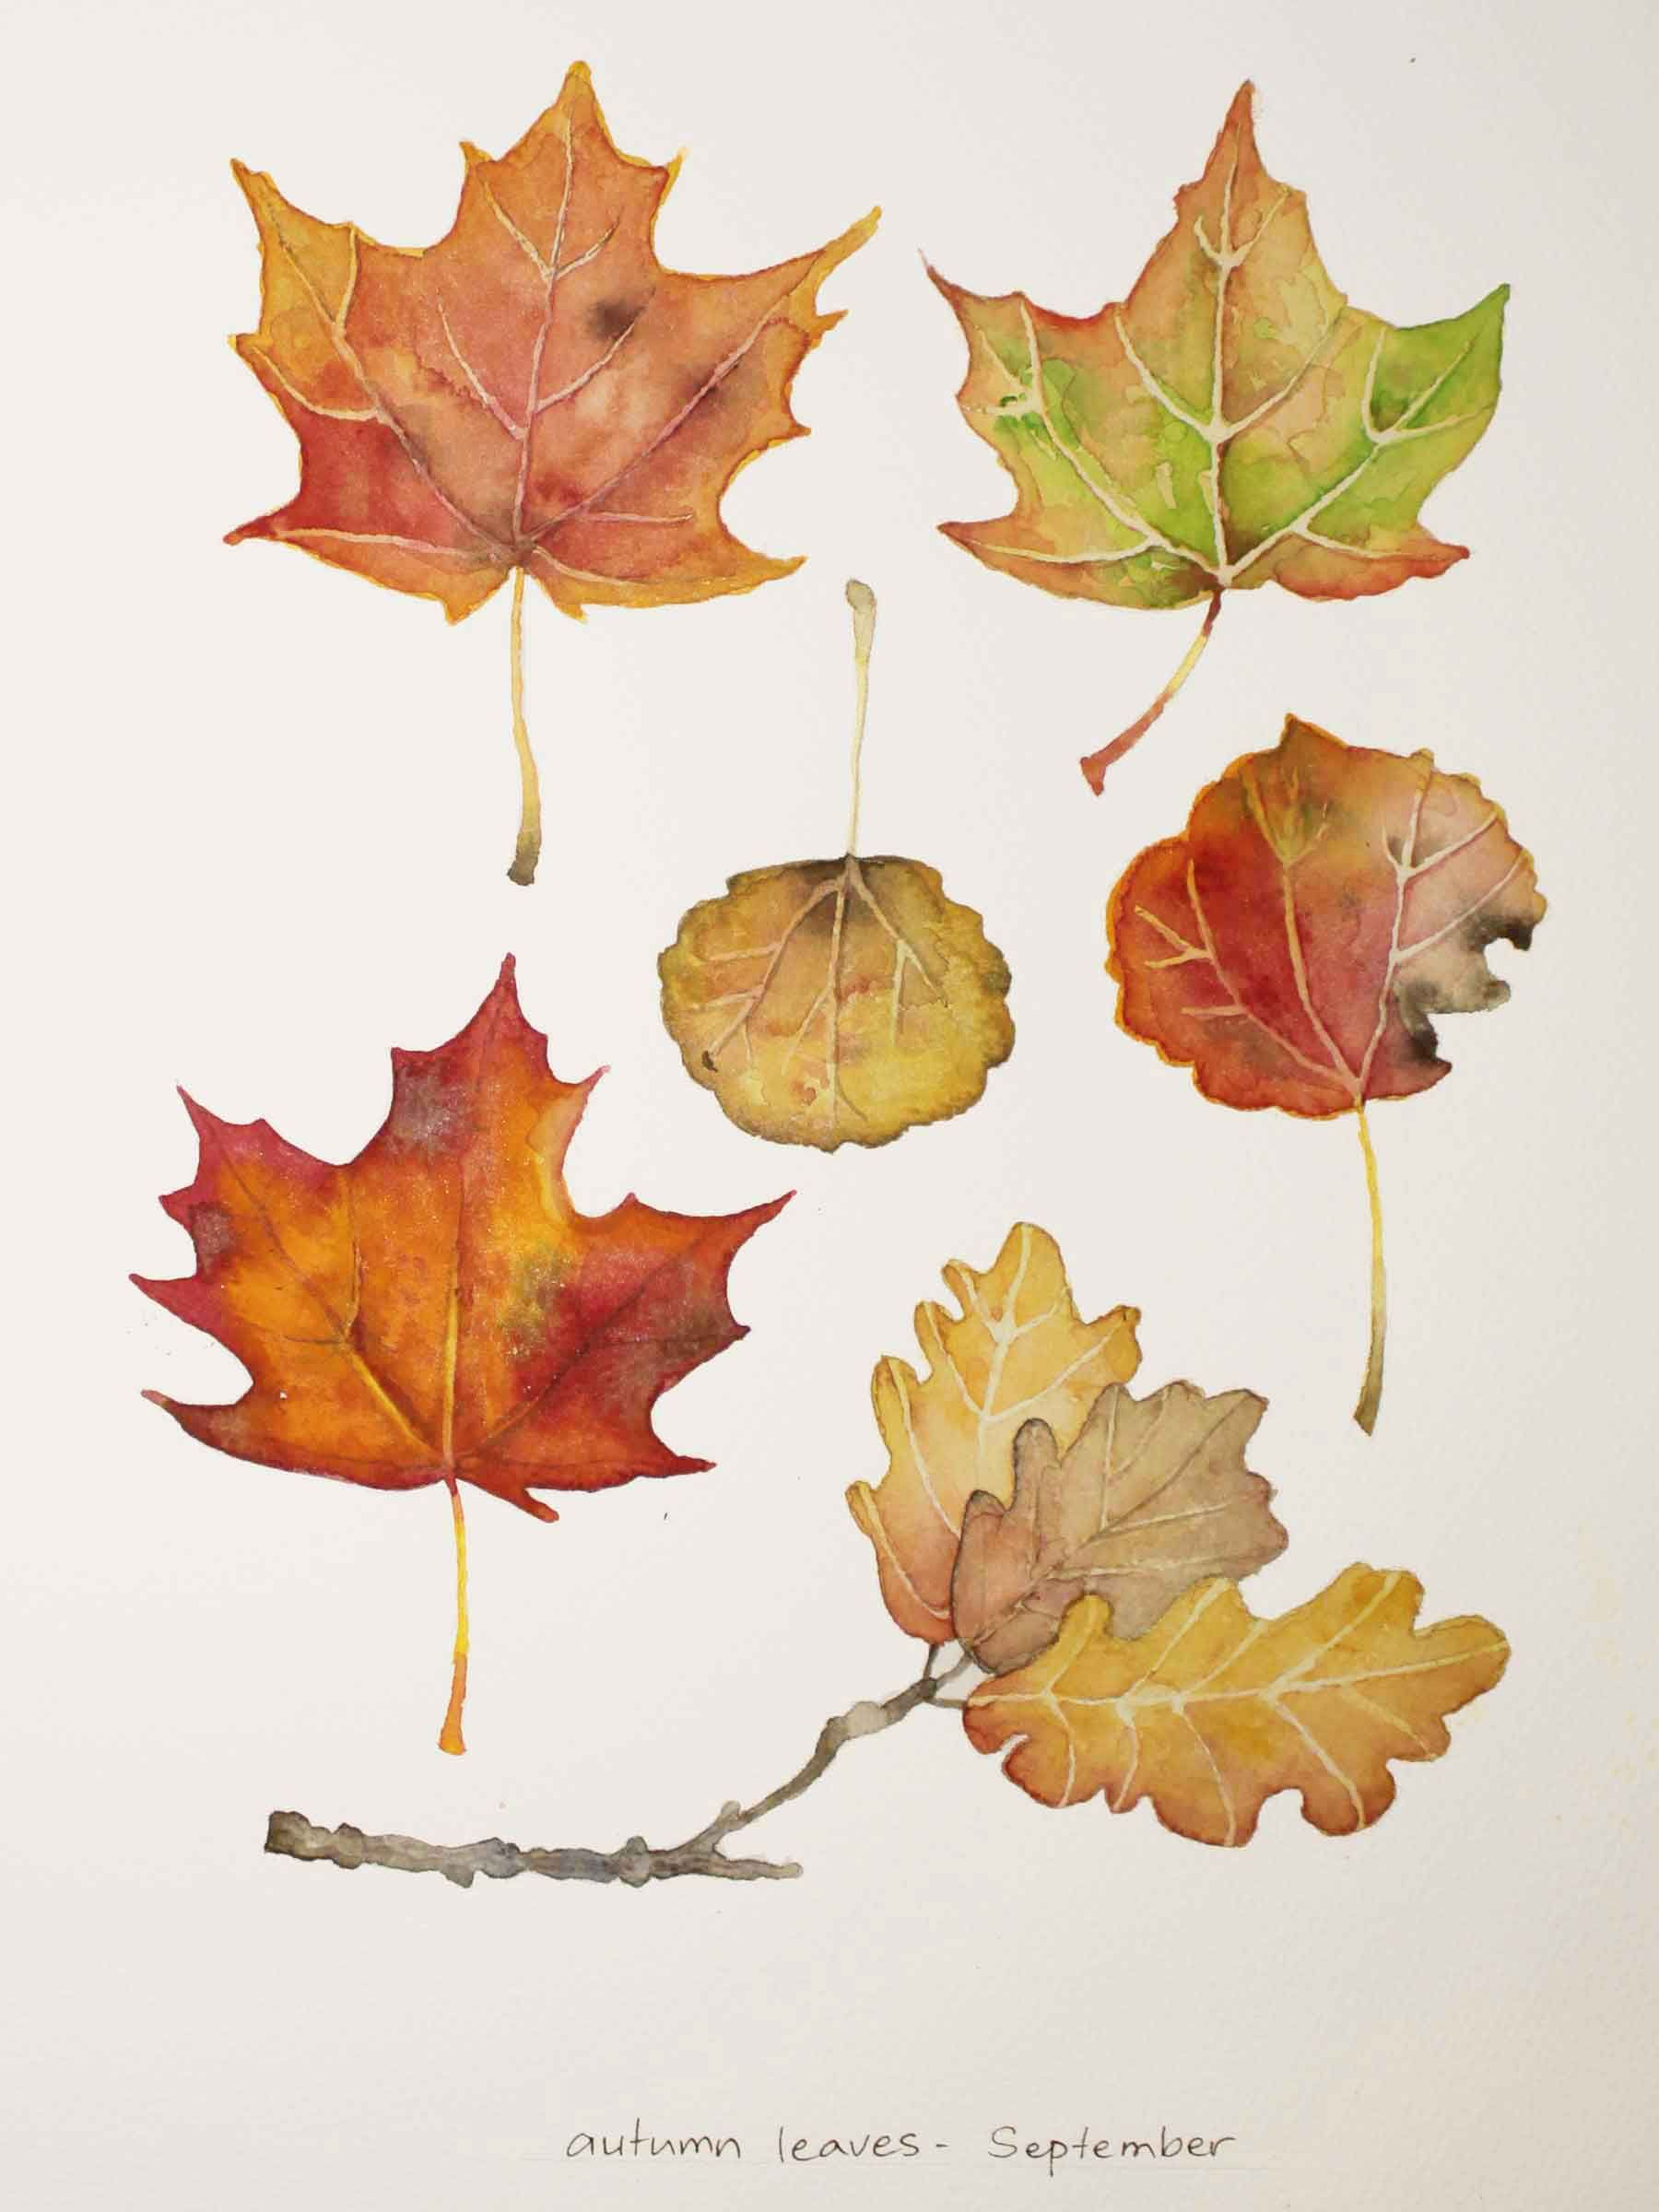 Autumn Leaves Watercolor, Sini Ezer More